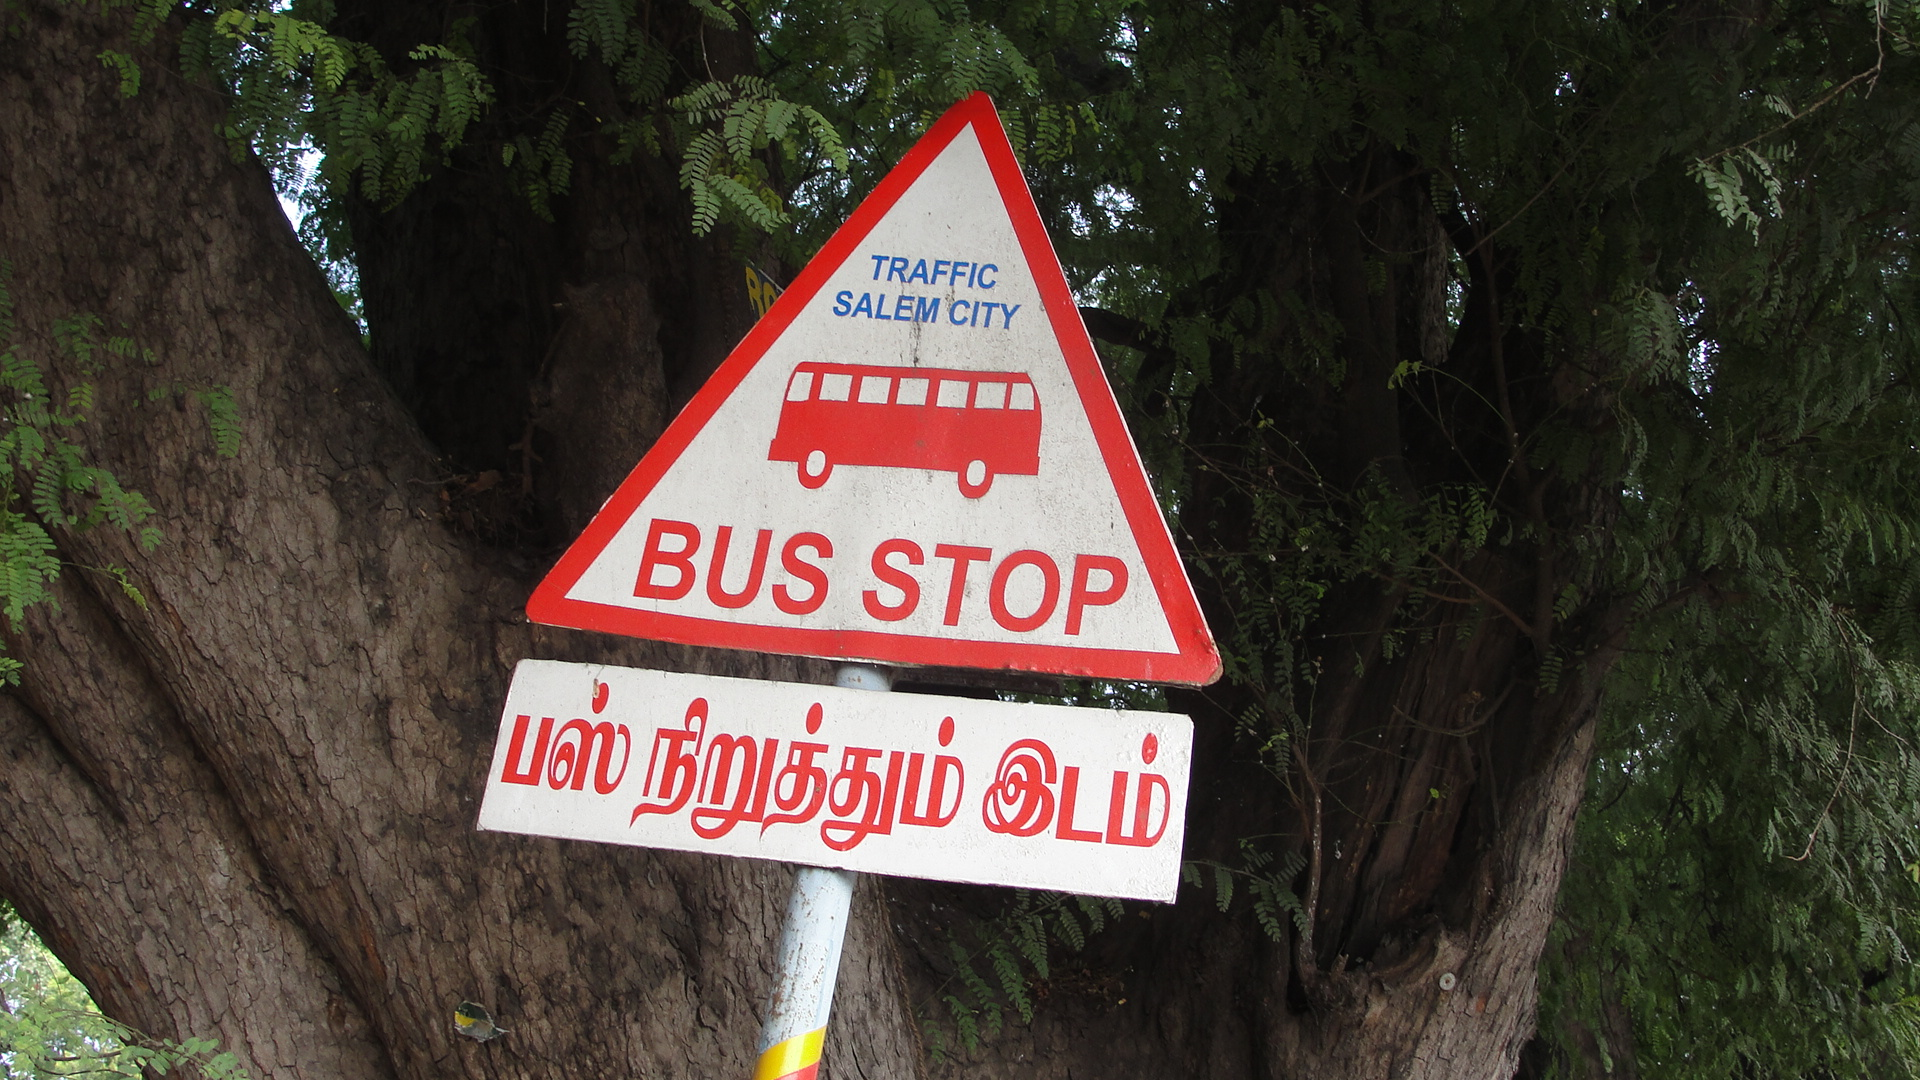 Bus Stop Board File:a Bus Stop Sign Board.jpg